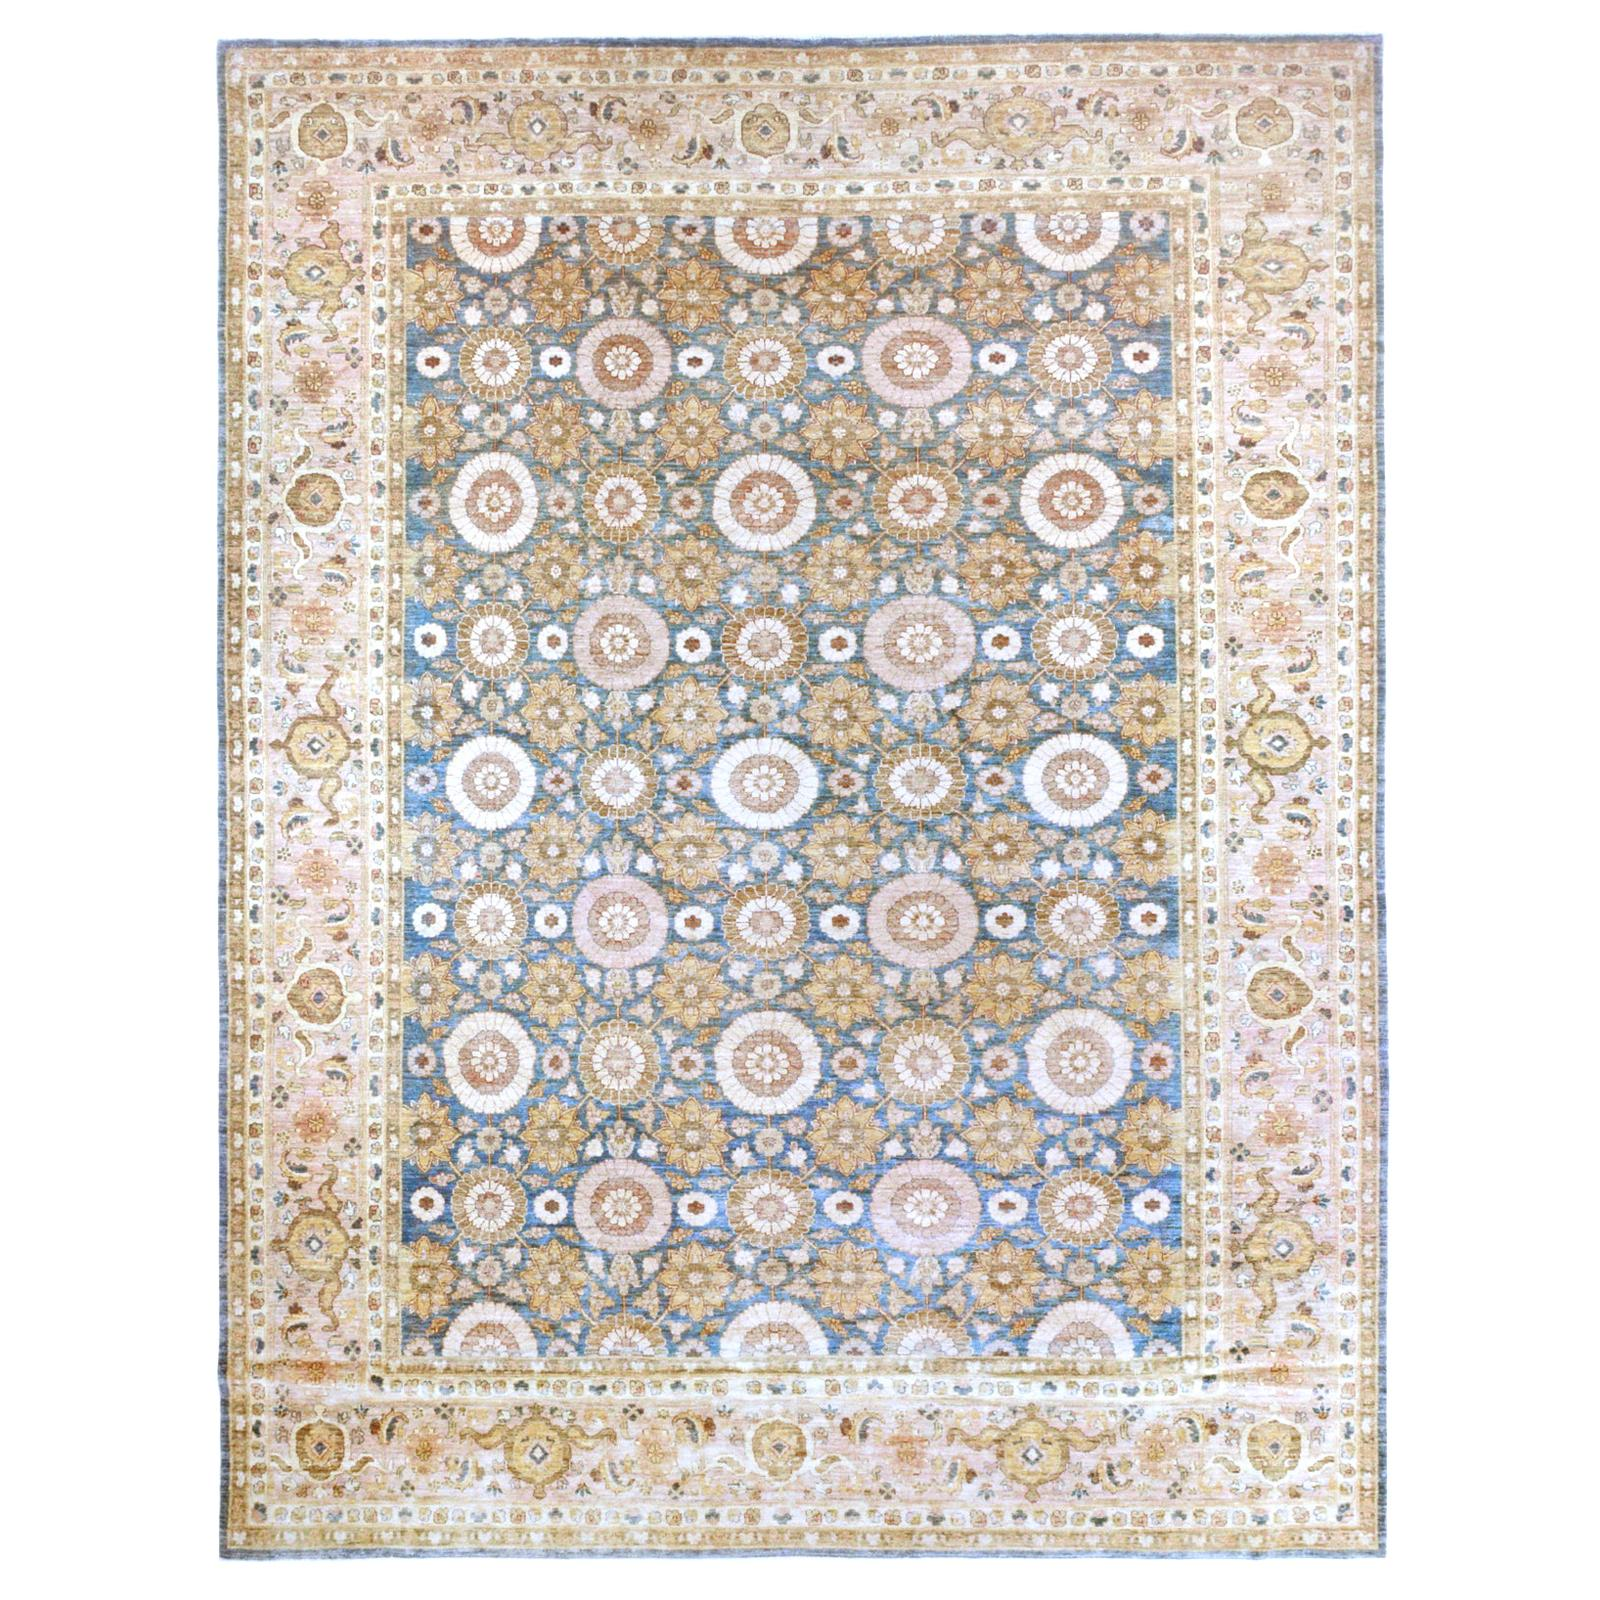 Blue Floral Wool Area Rug with Pink and Gold